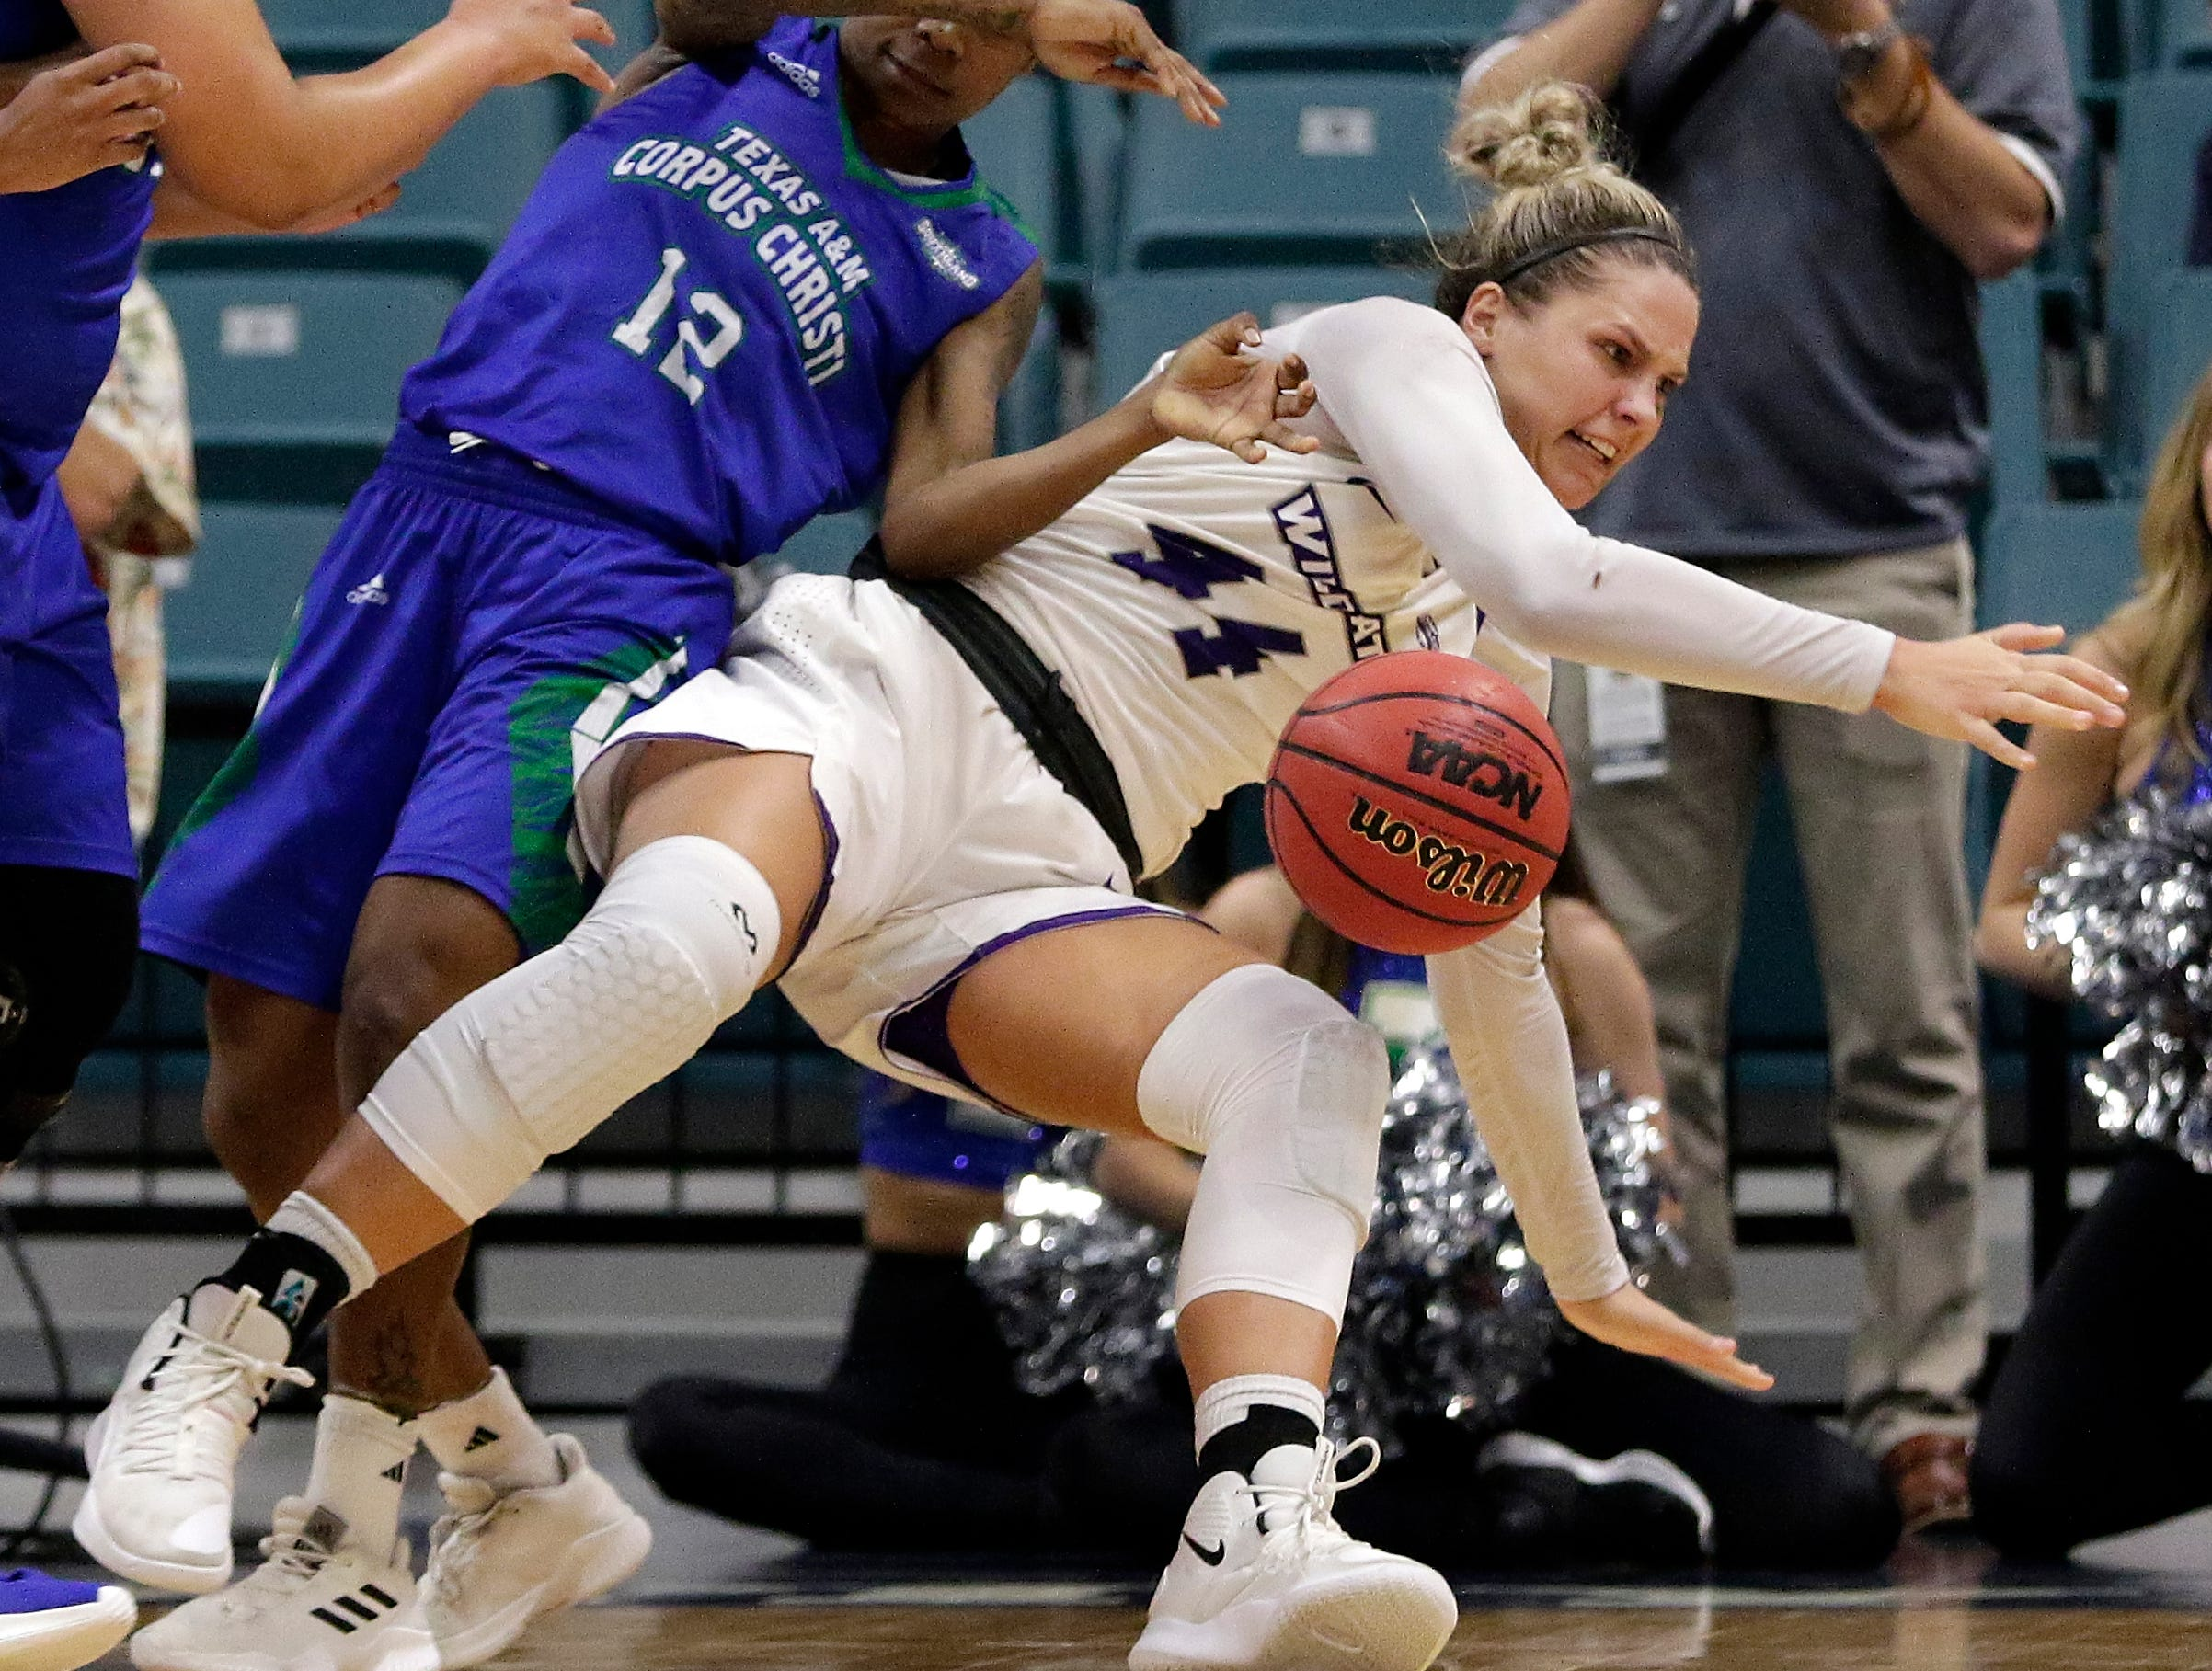 Abilene Christian forward Lexie Ducat (44) falls as she tries to keep the ball from the steal attempt by Texas A&M-Corpus Christi guard Dae Dae Evans (12) during the second half of the Southland Conference women's tournament title Sunday, March 17, 2019, in Katy.